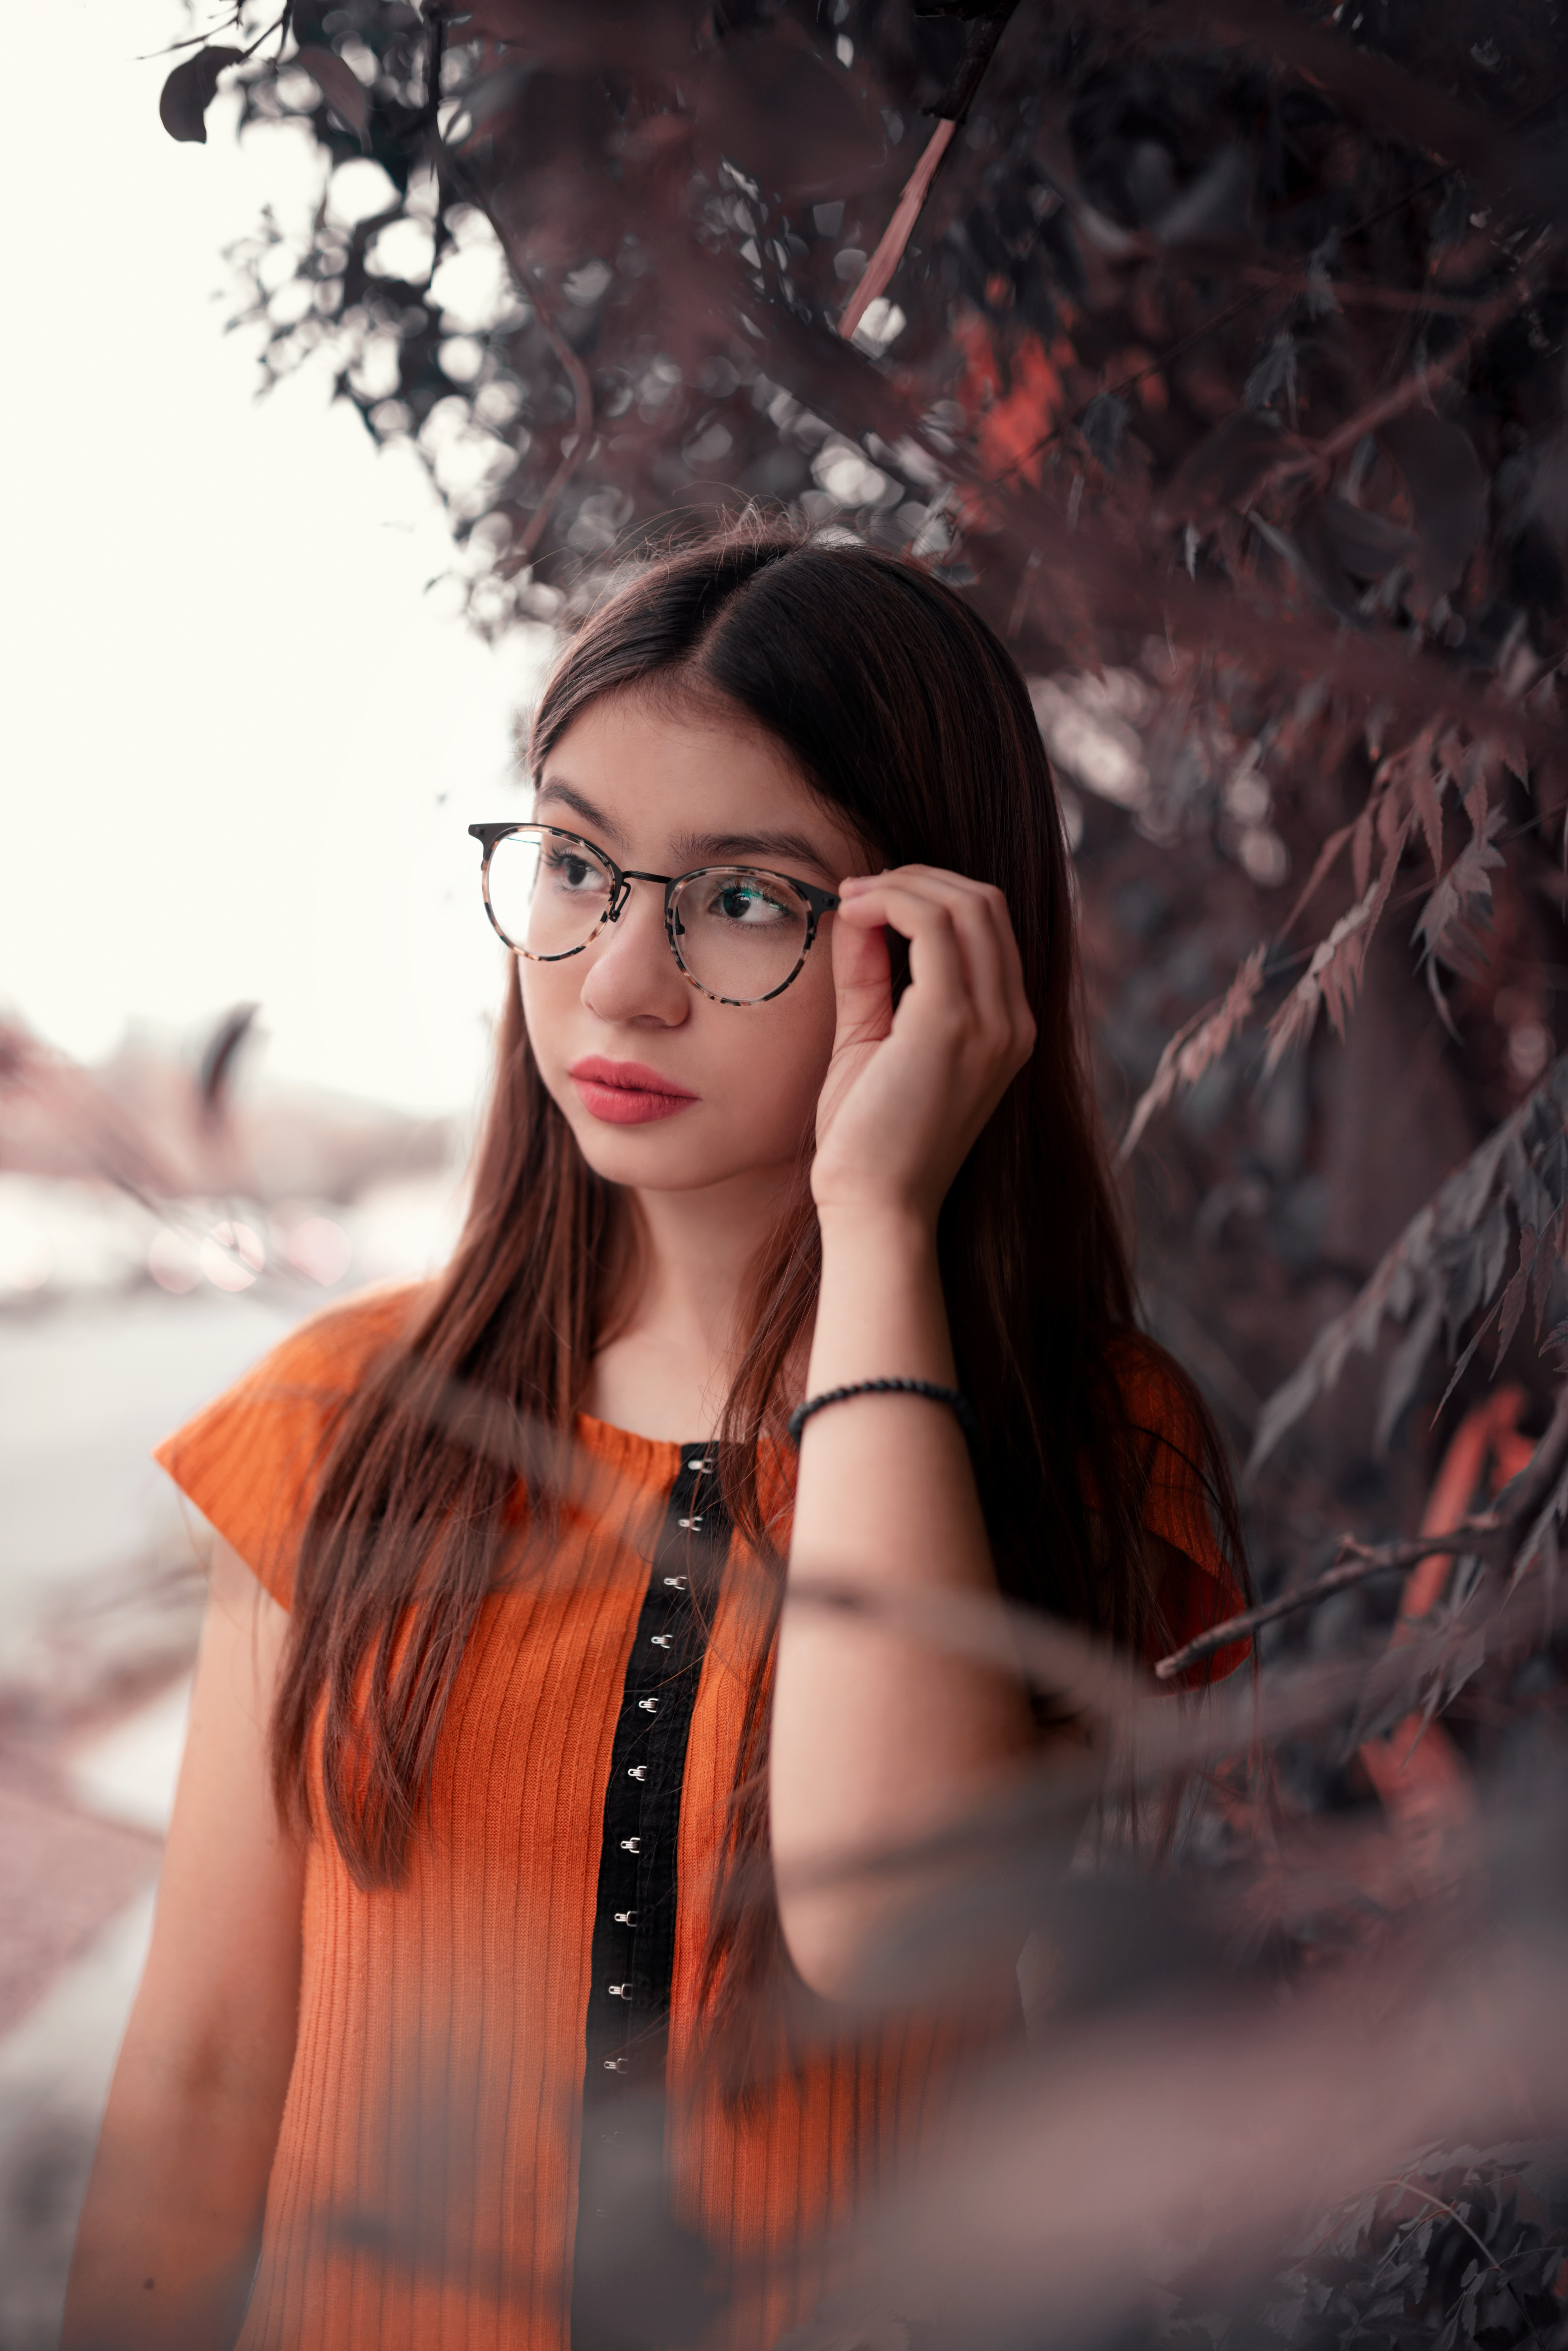 Teen girl with glasses and orange top